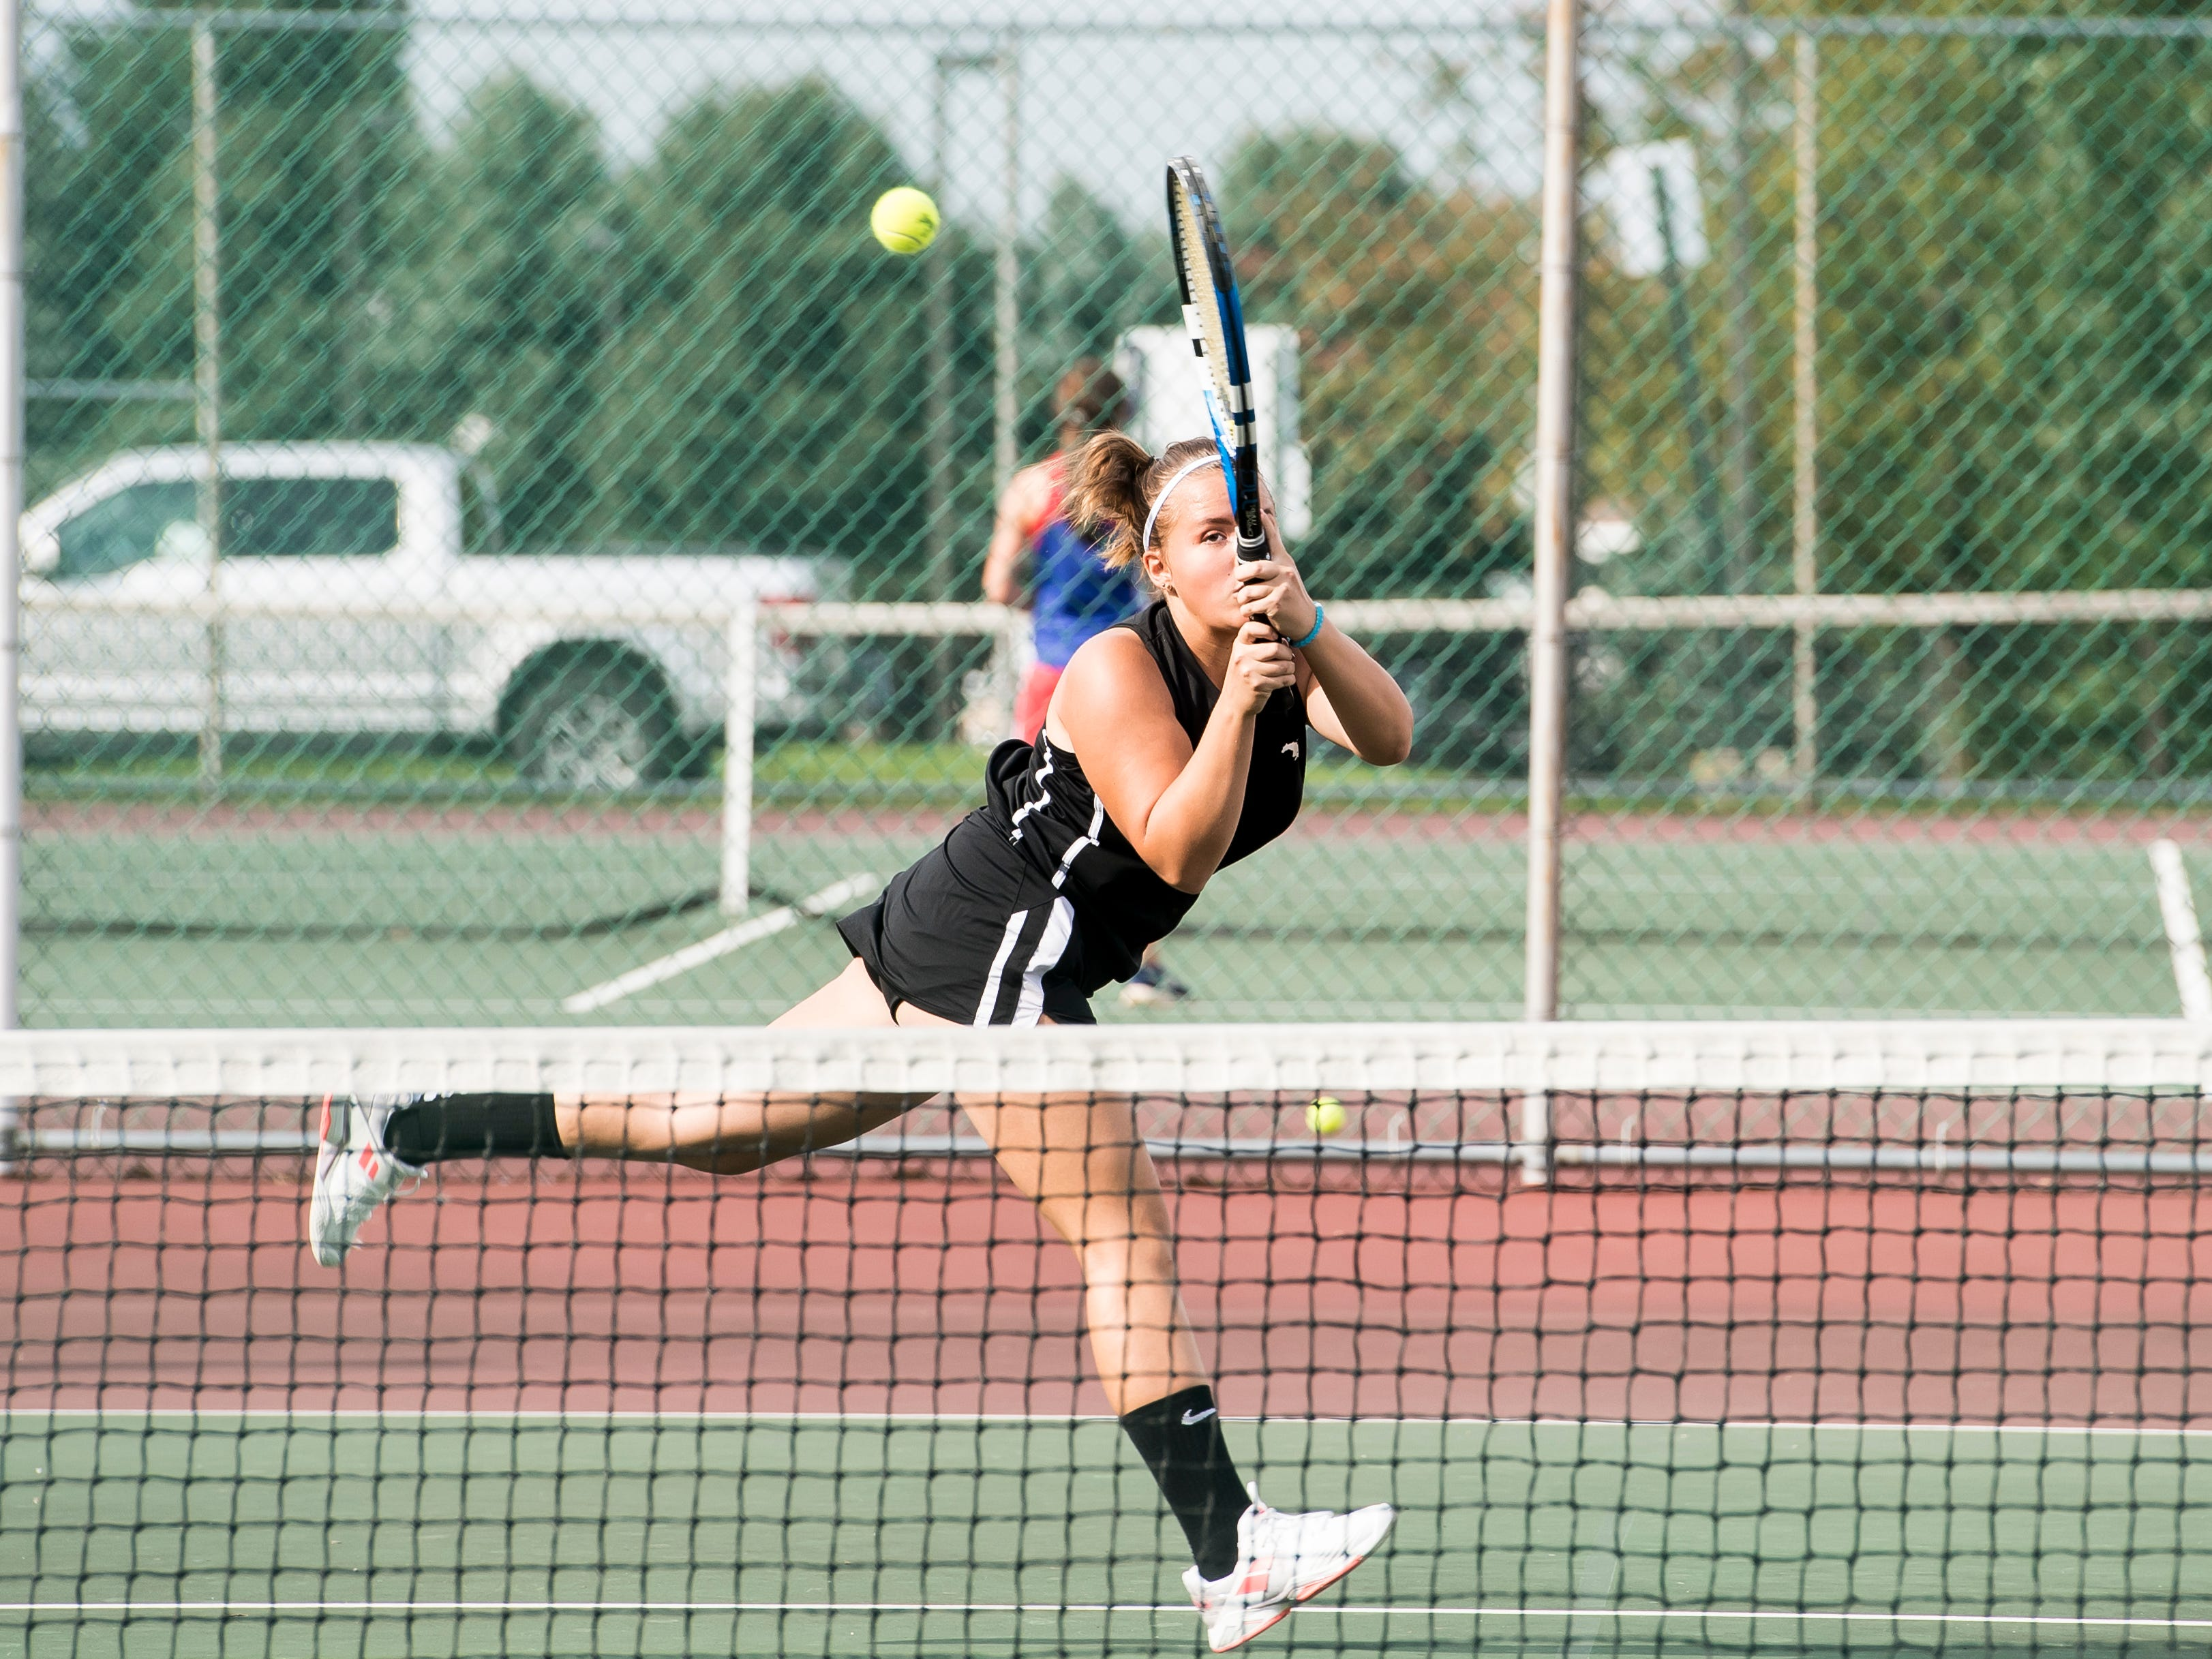 South Western's Sarah McComas follows through on a swing while playing in the No. 1 doubles match against New Oxford on Tuesday, October 2, 2018.